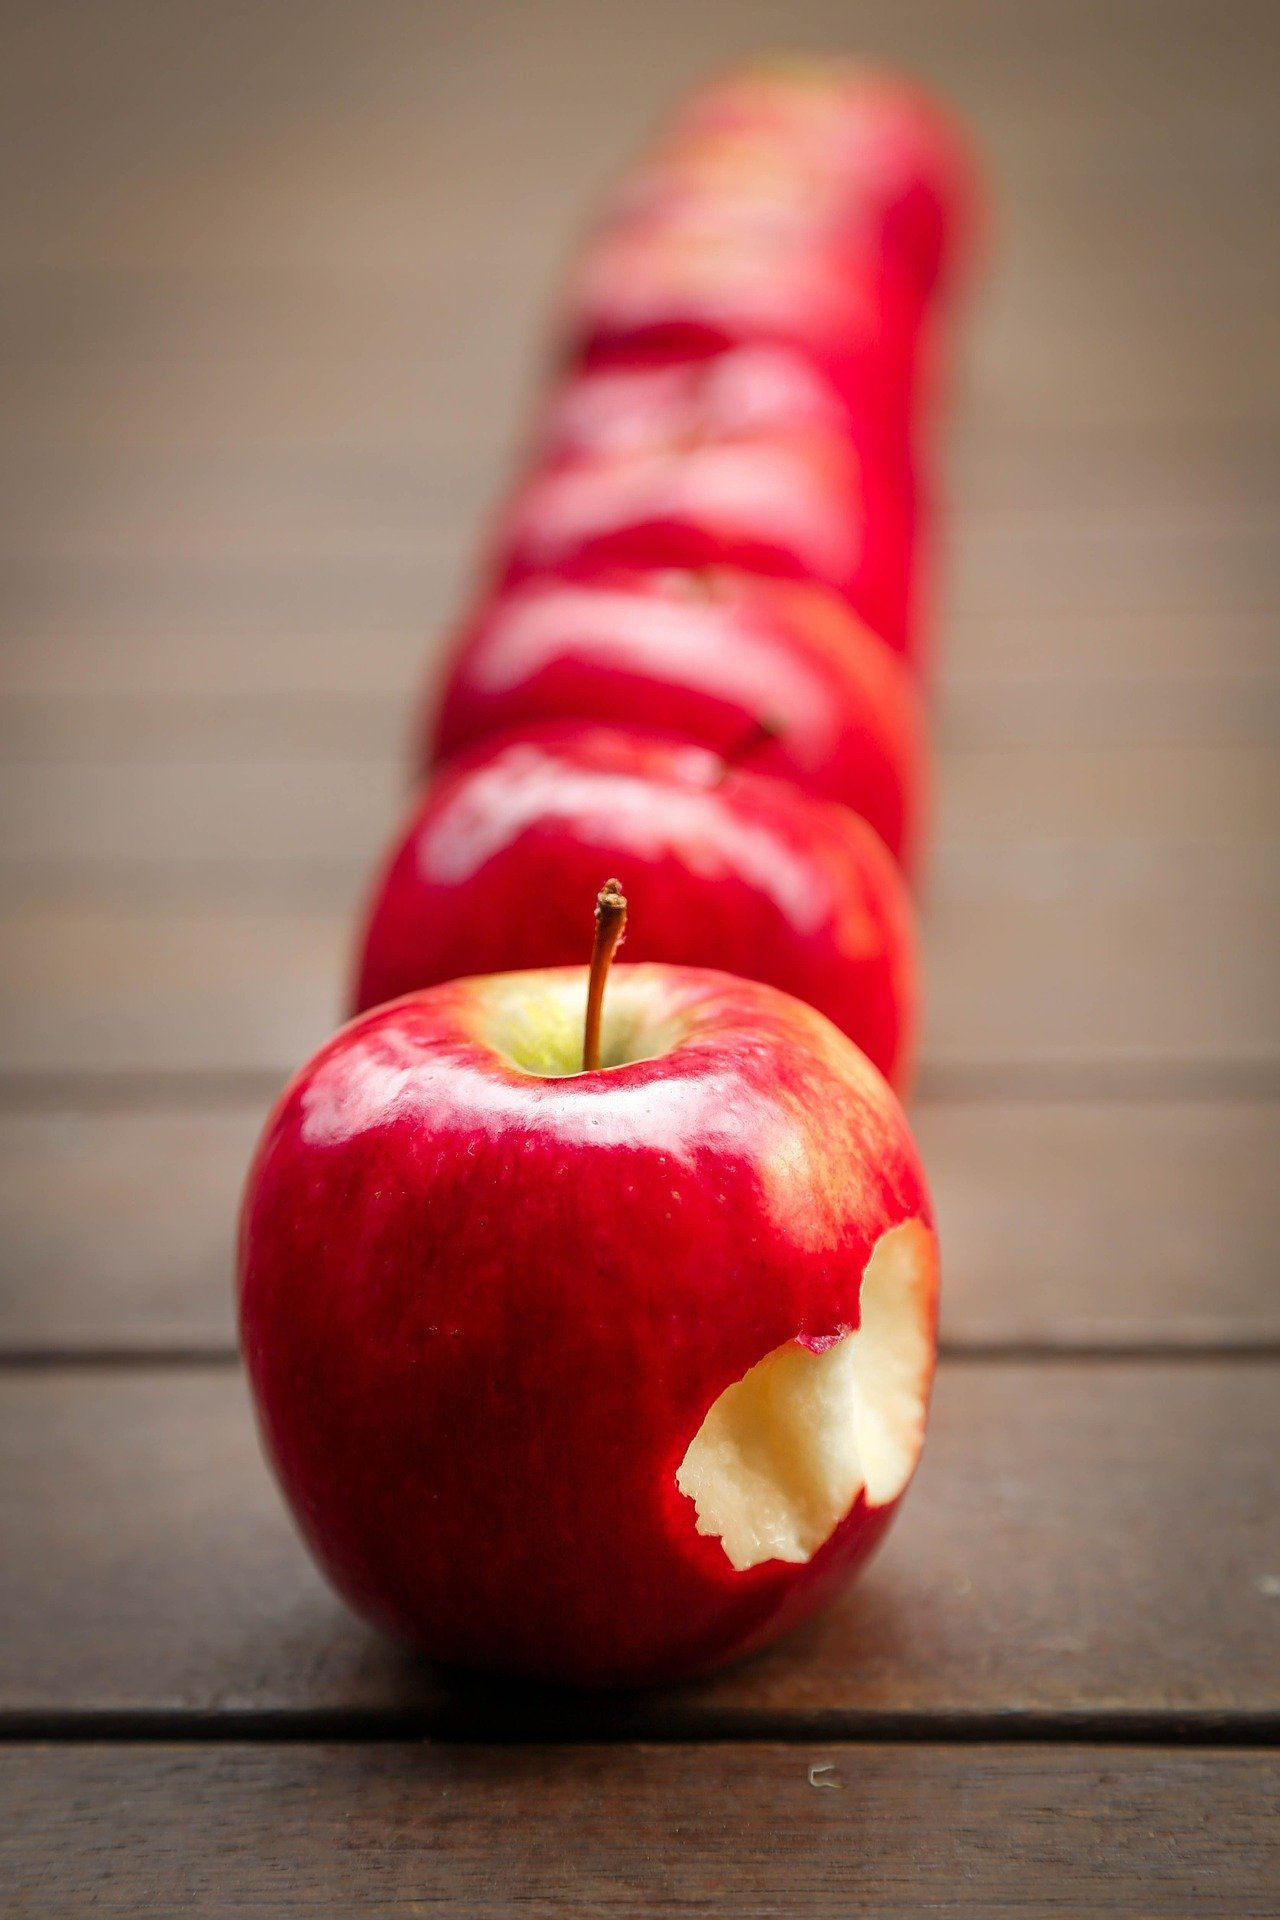 Apples placed on a table in a straight line with the first one featuring bite marks   Photo: Pixabay/Tracy Lundgren